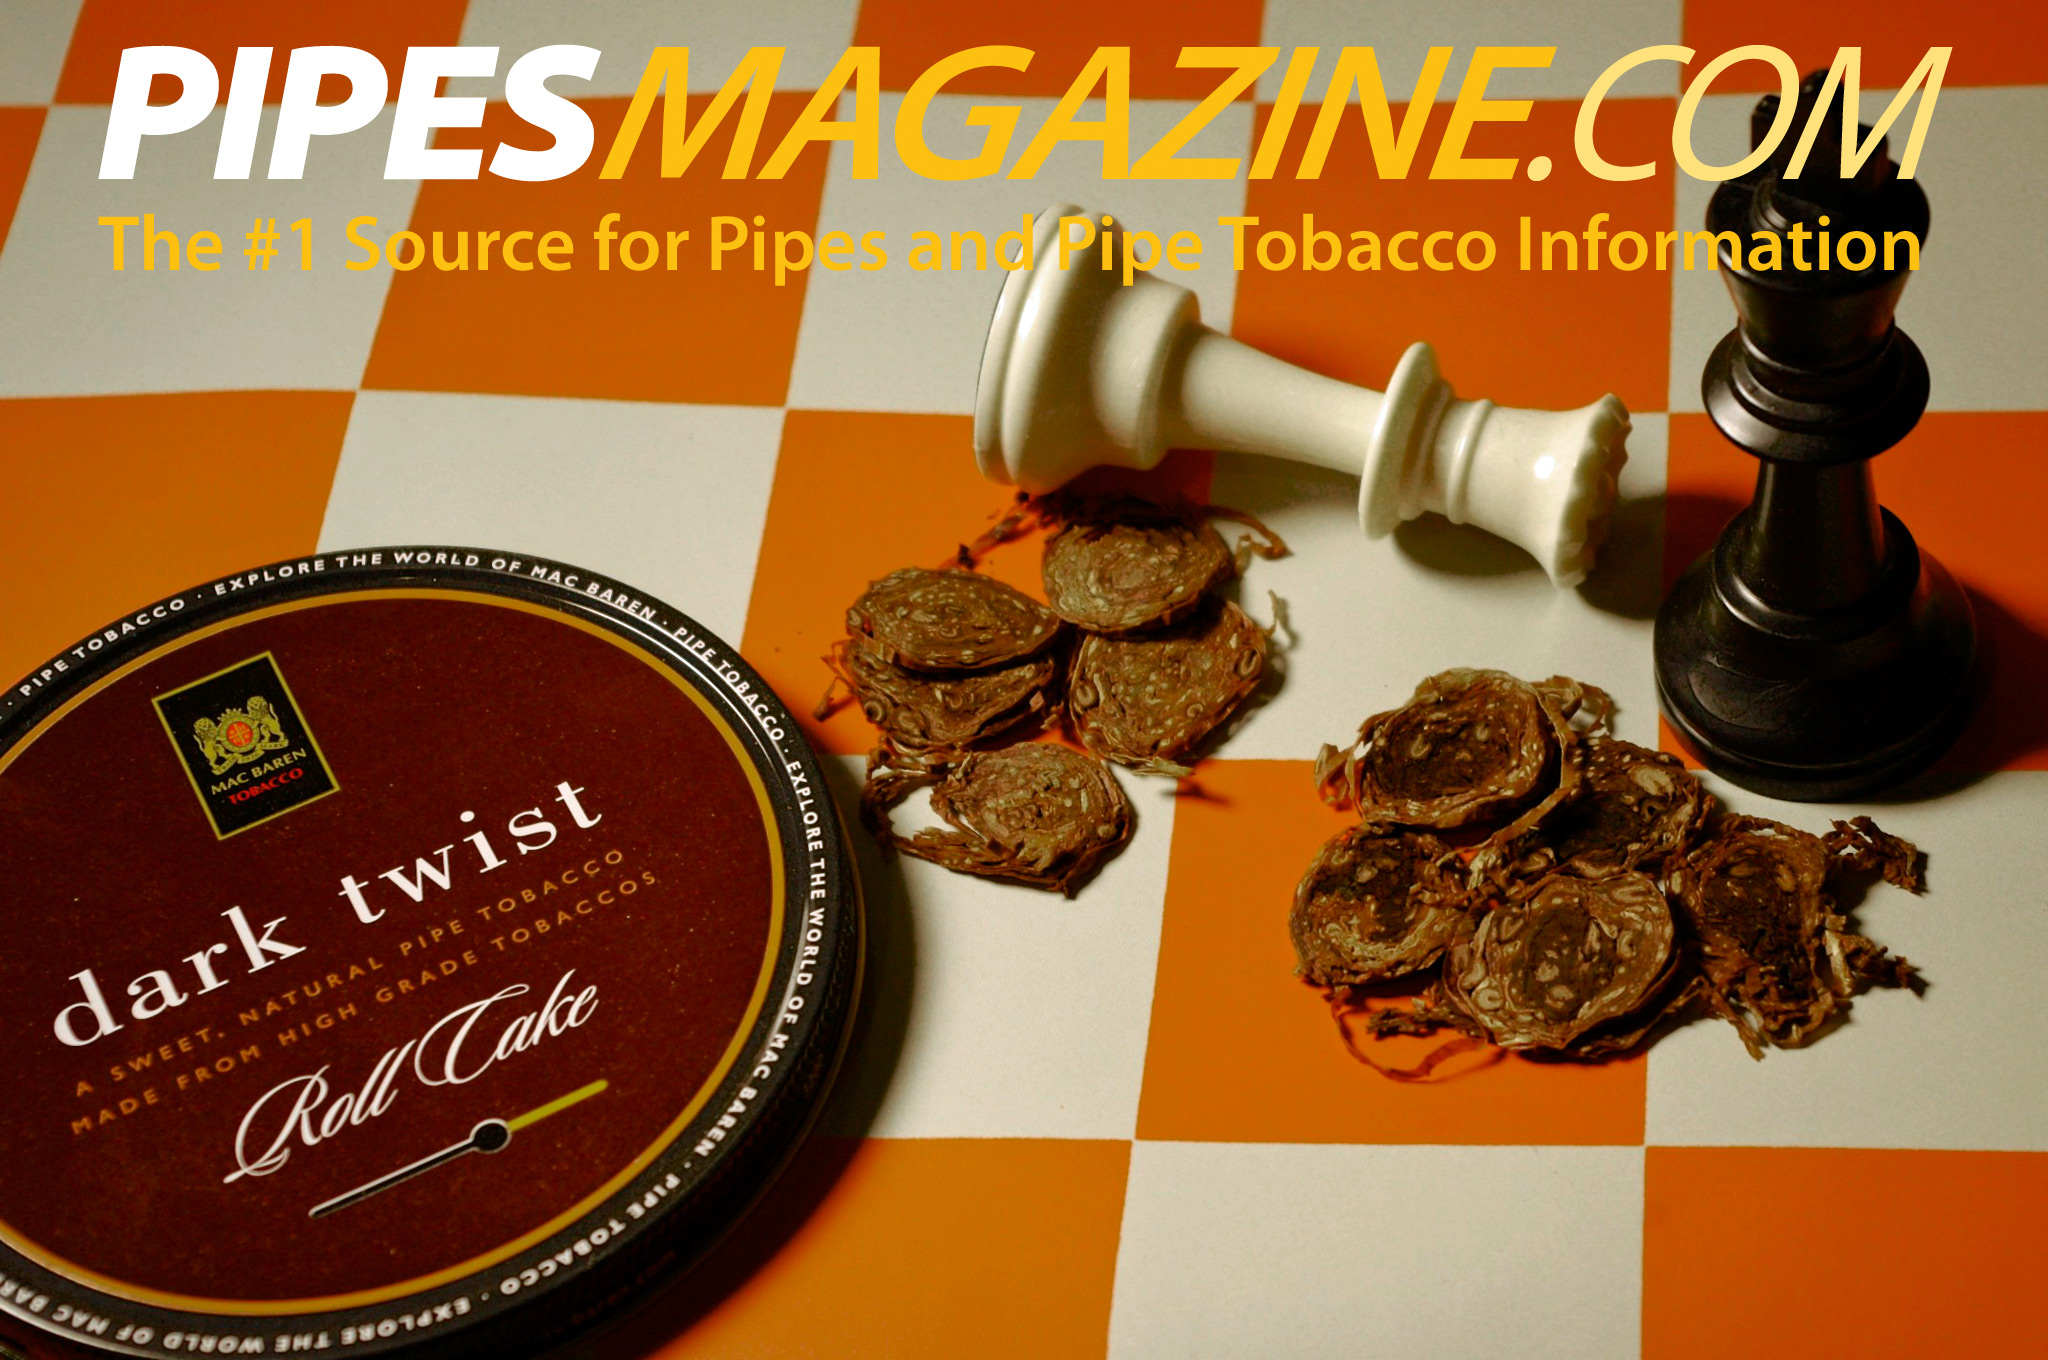 Mac baren dark twist review the source for pipes and